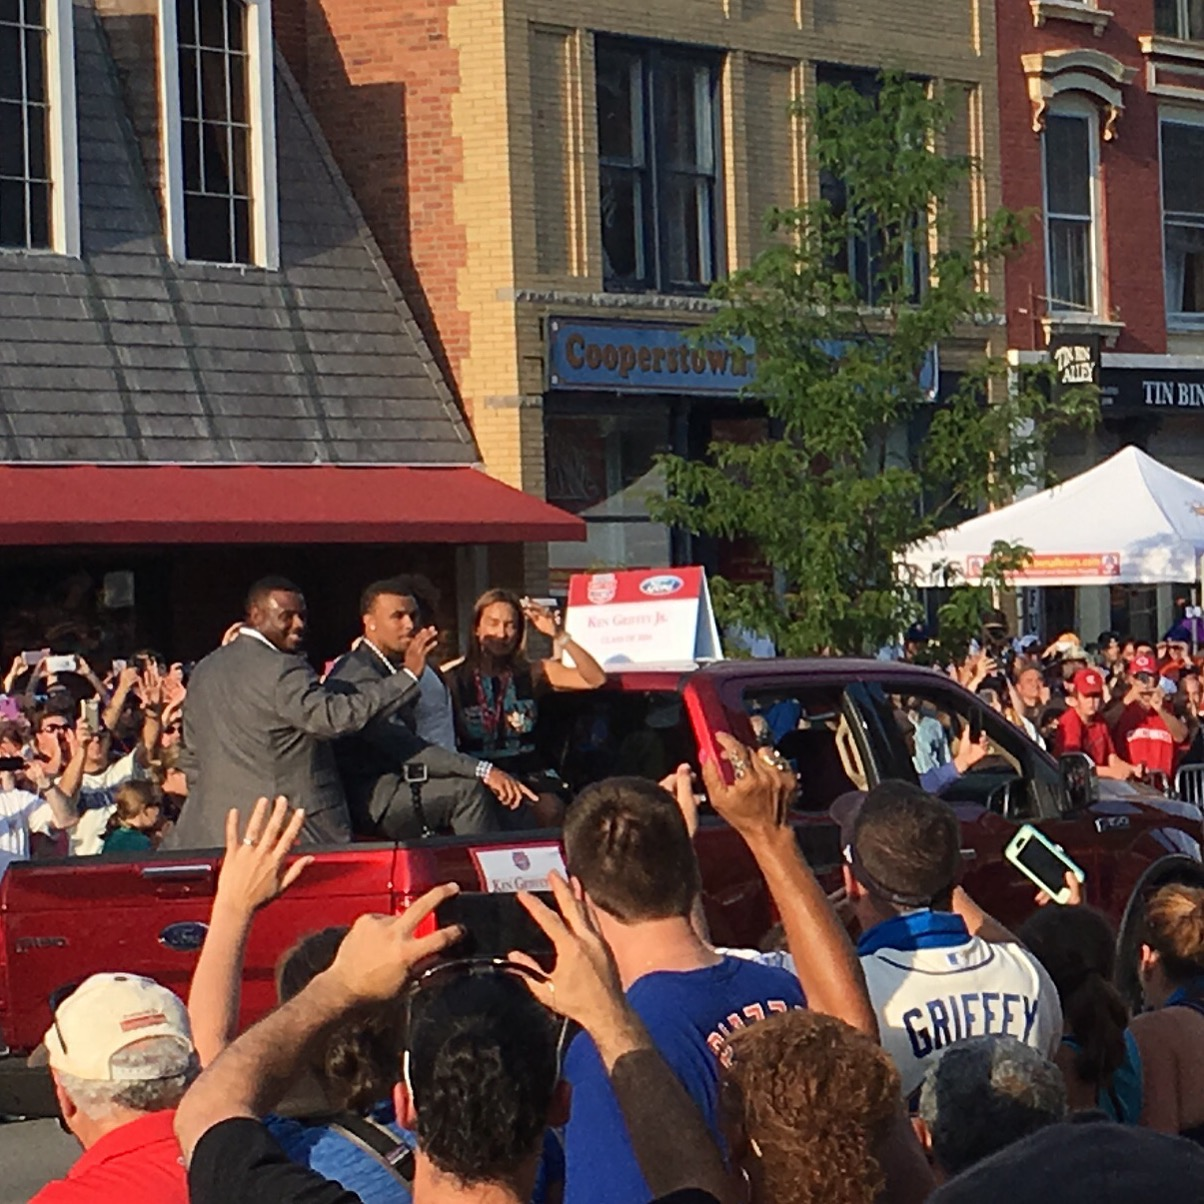 Griffey with his wife and two of his kids at the Hall of Fame Parade on July 24, 2016.